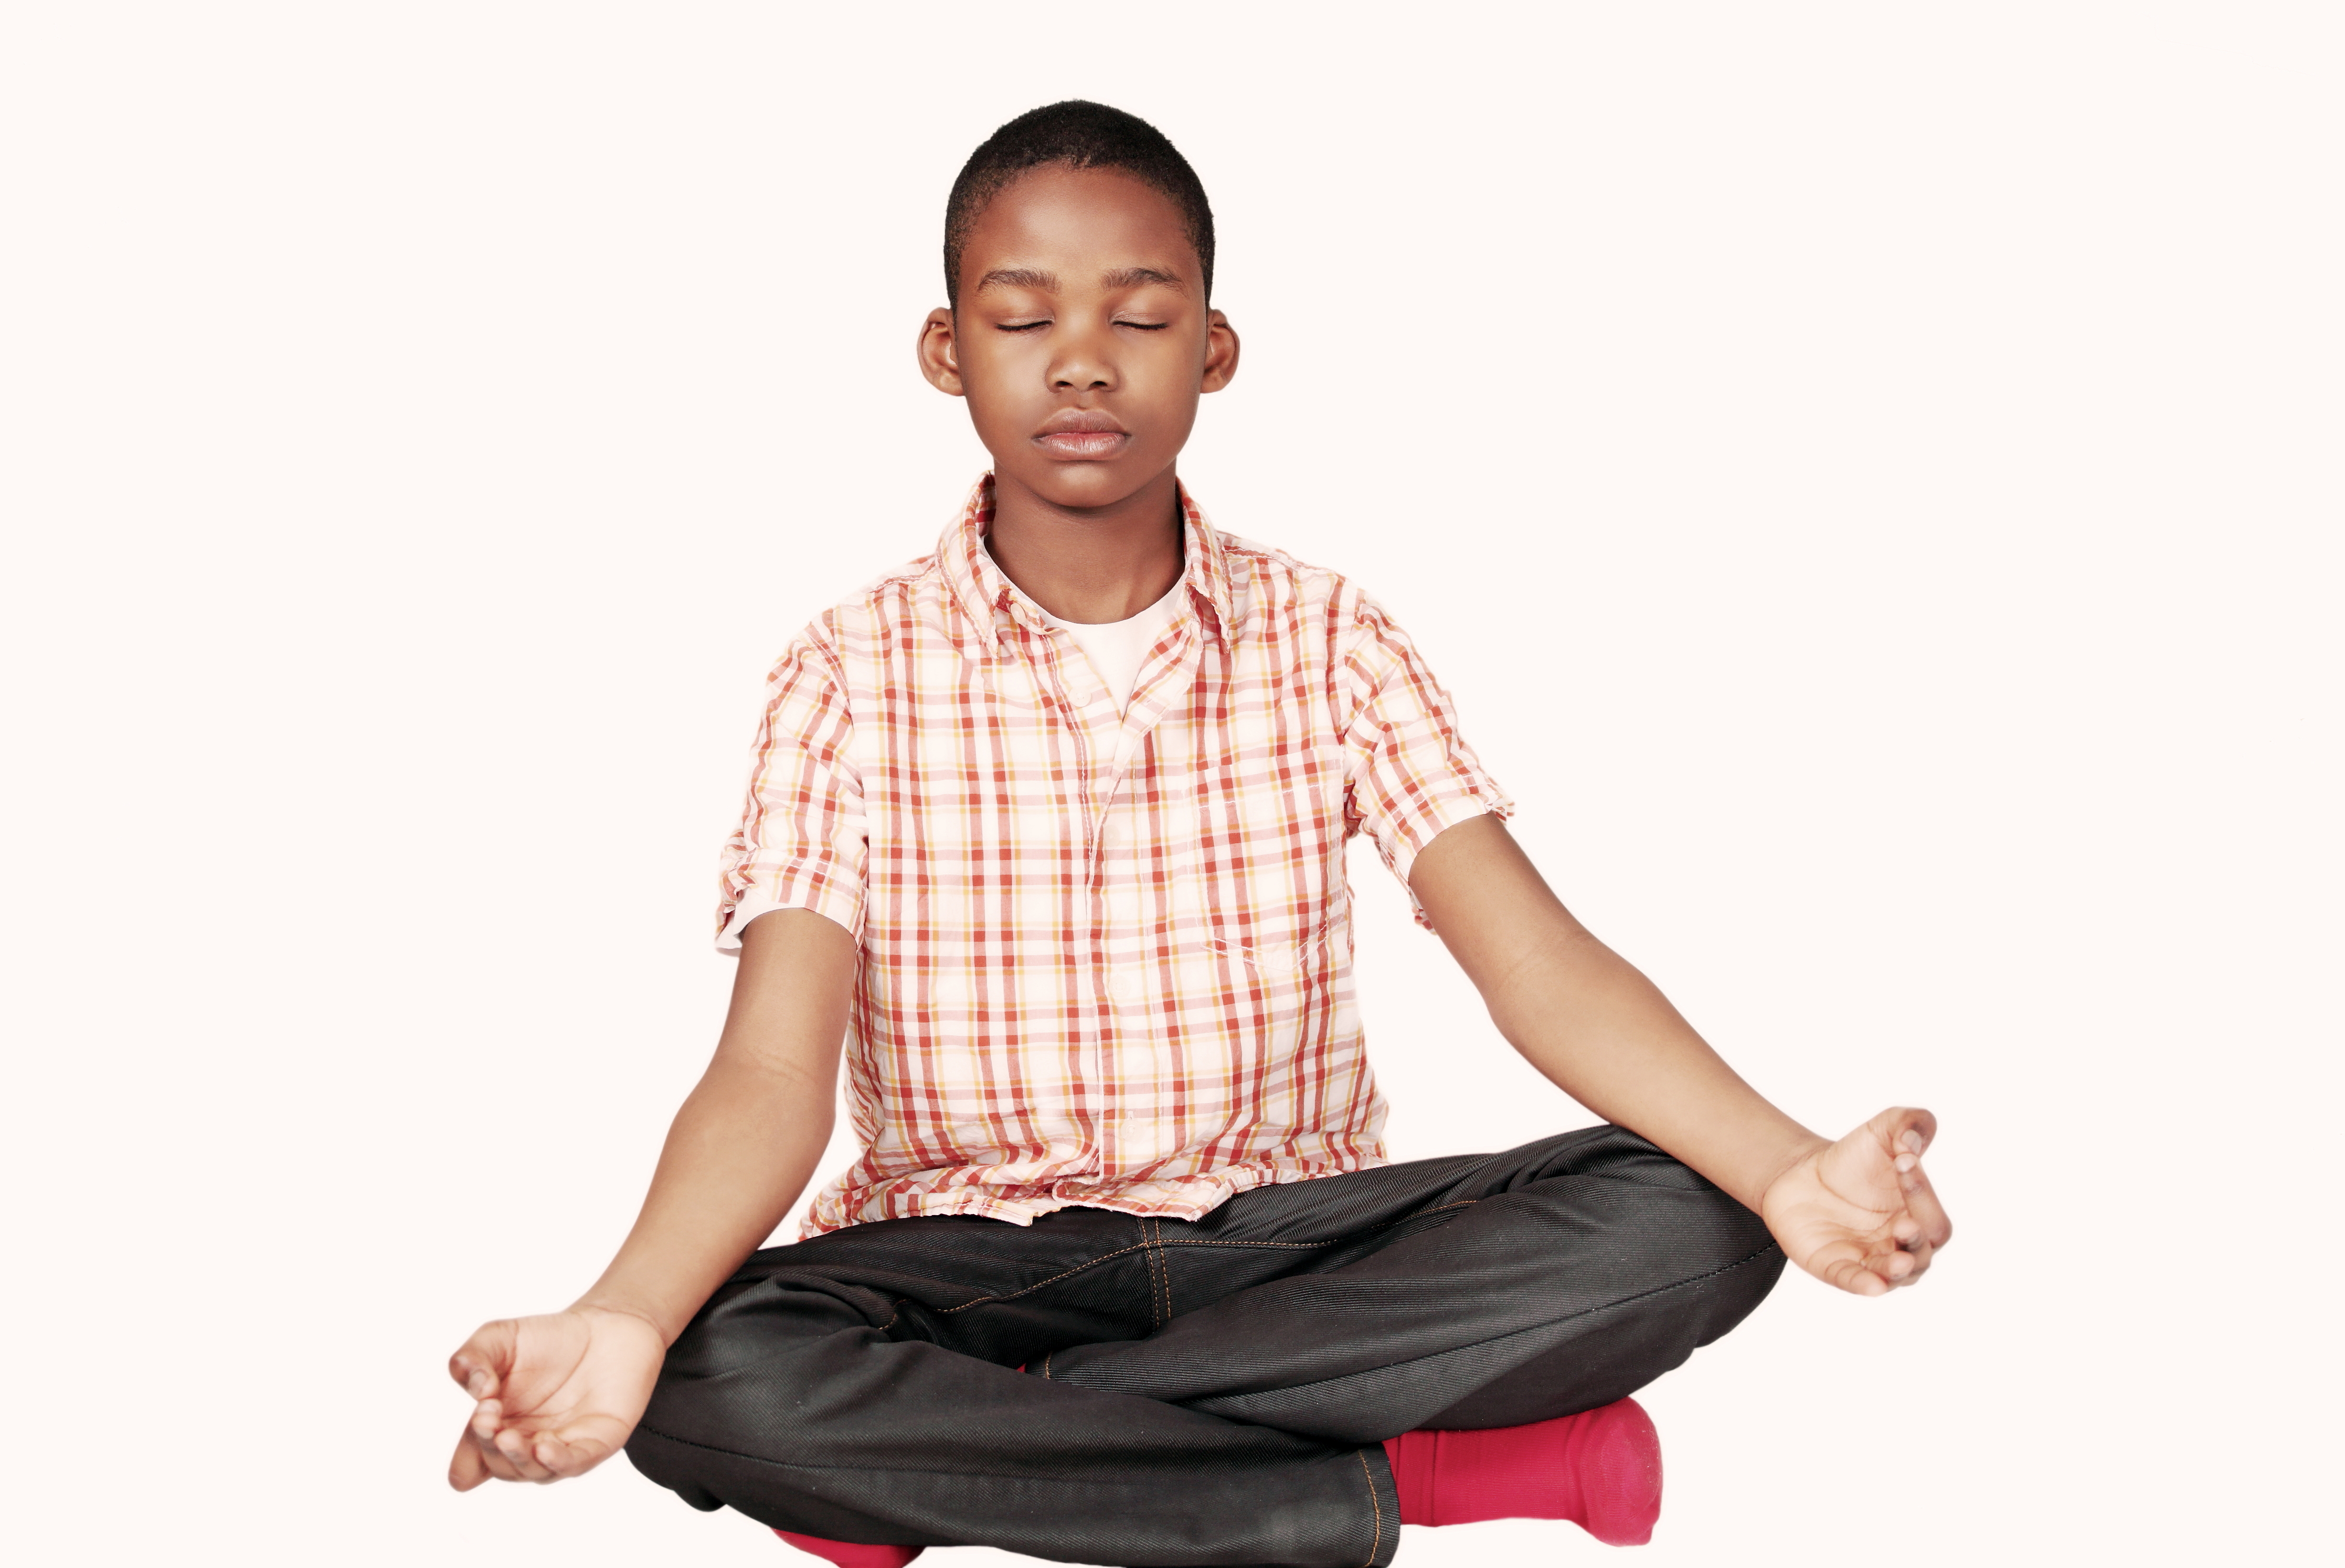 Yoga Fit and Focused Kids